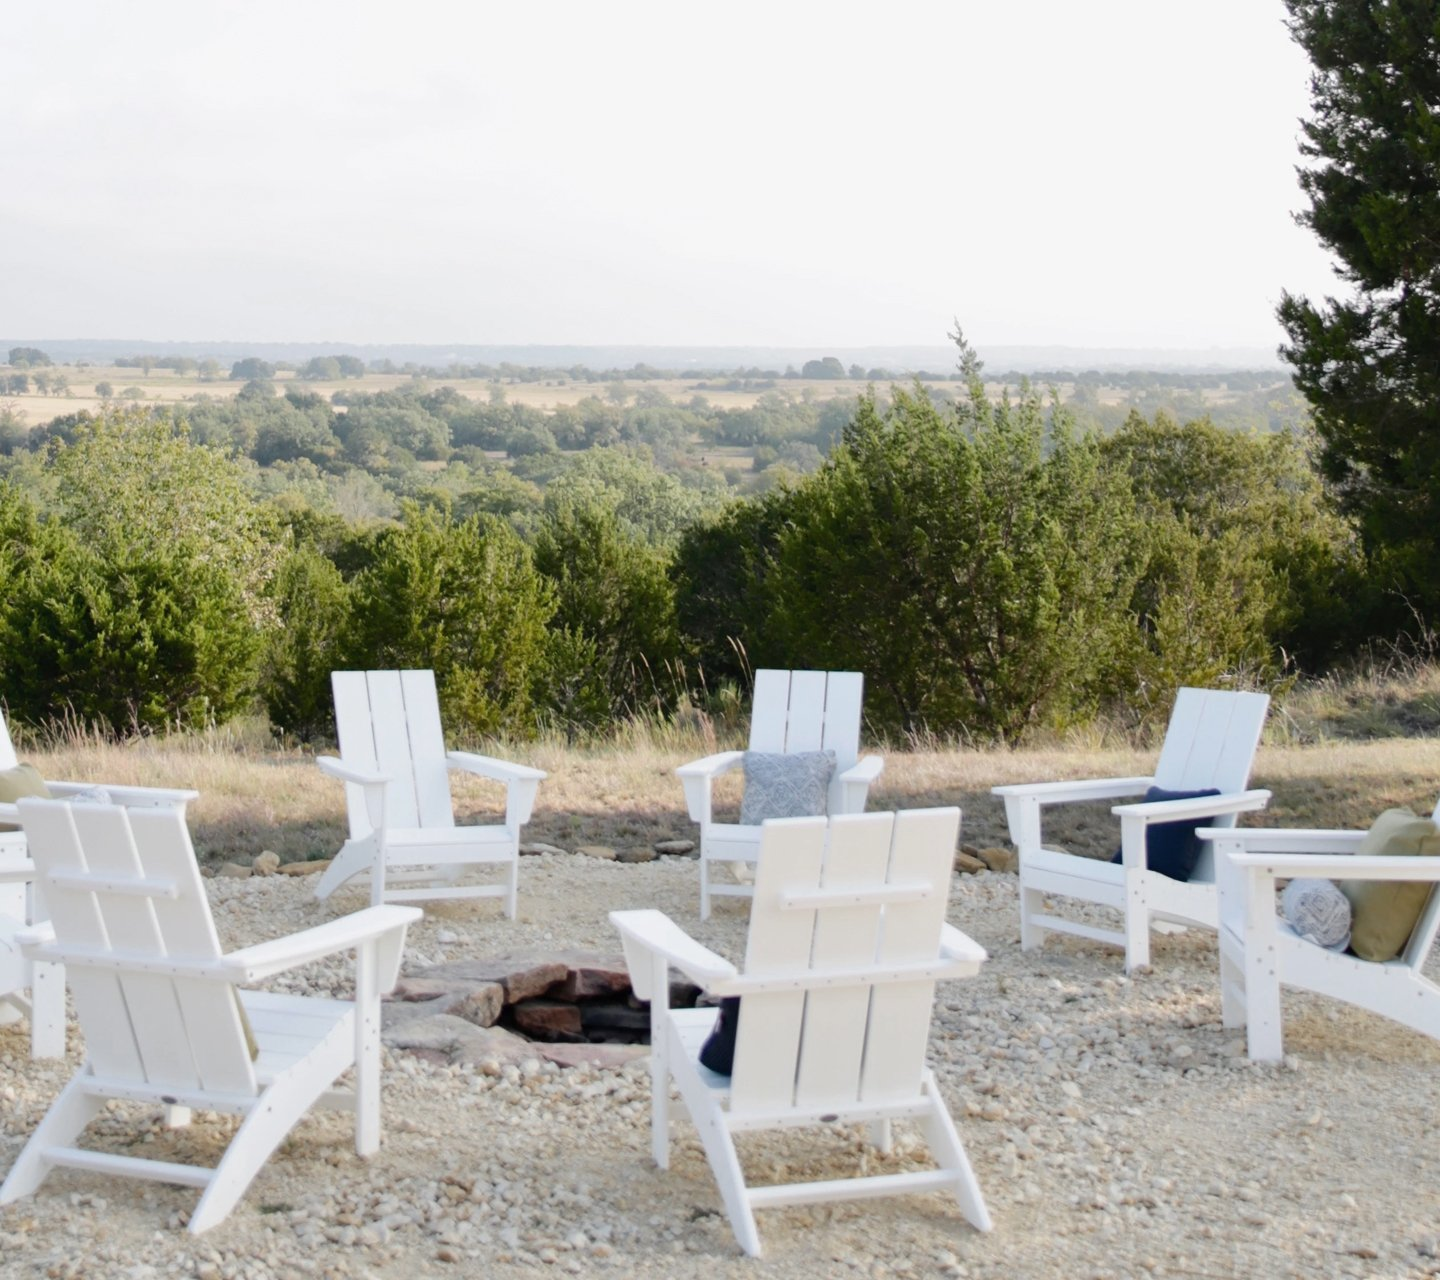 whiter polywood chairs in circle outdoors